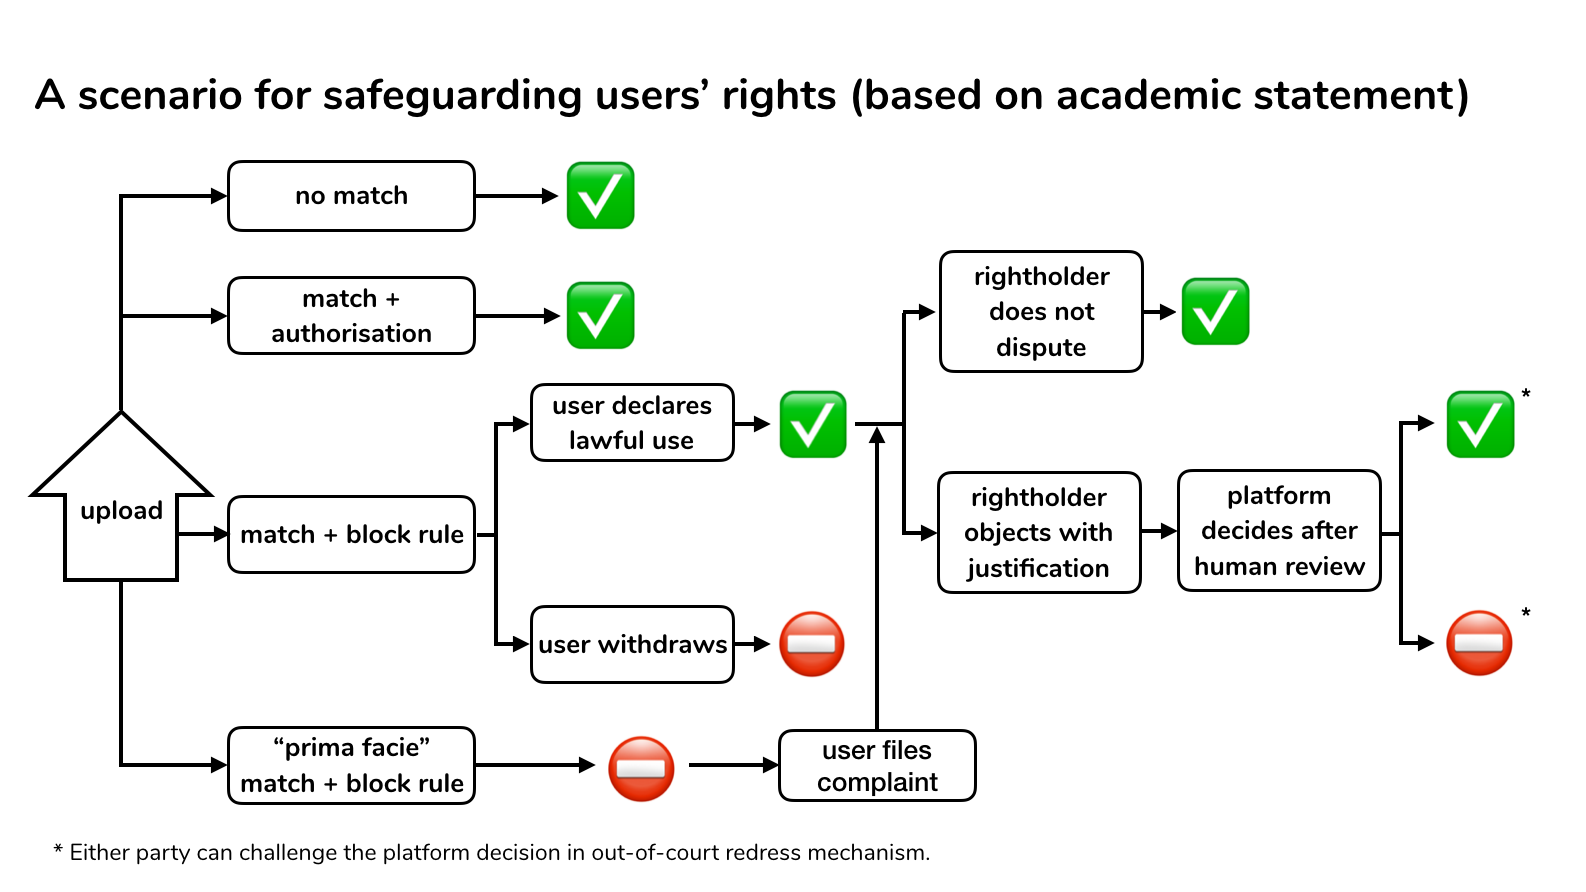 flowchart depicting COMMUNIA's Art 17 Scenario for safeguarding users rights